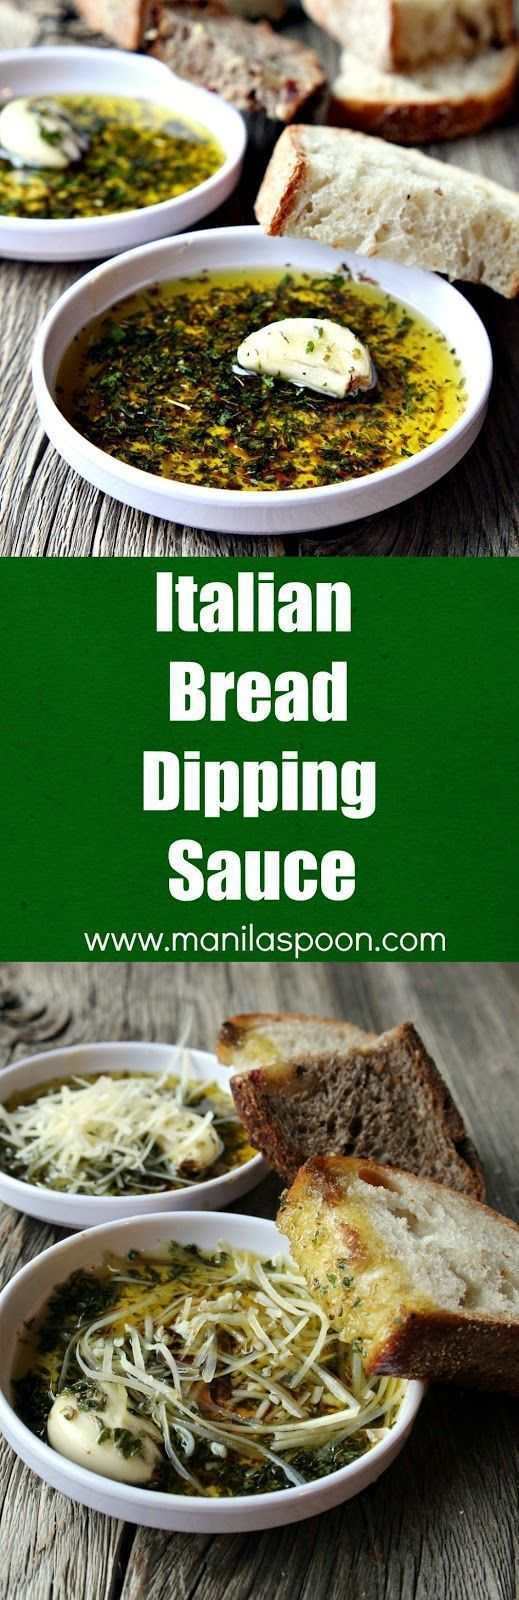 Italian Bread Dipping Oil- Restaurant-style dipping sauce with Italian herbs and balsamic vinegar, perfect for dipping your favorite crusty bread. Mix it up with your favorite herbs and add a spicy kick to create your own flavor blend. | Manila Spoon